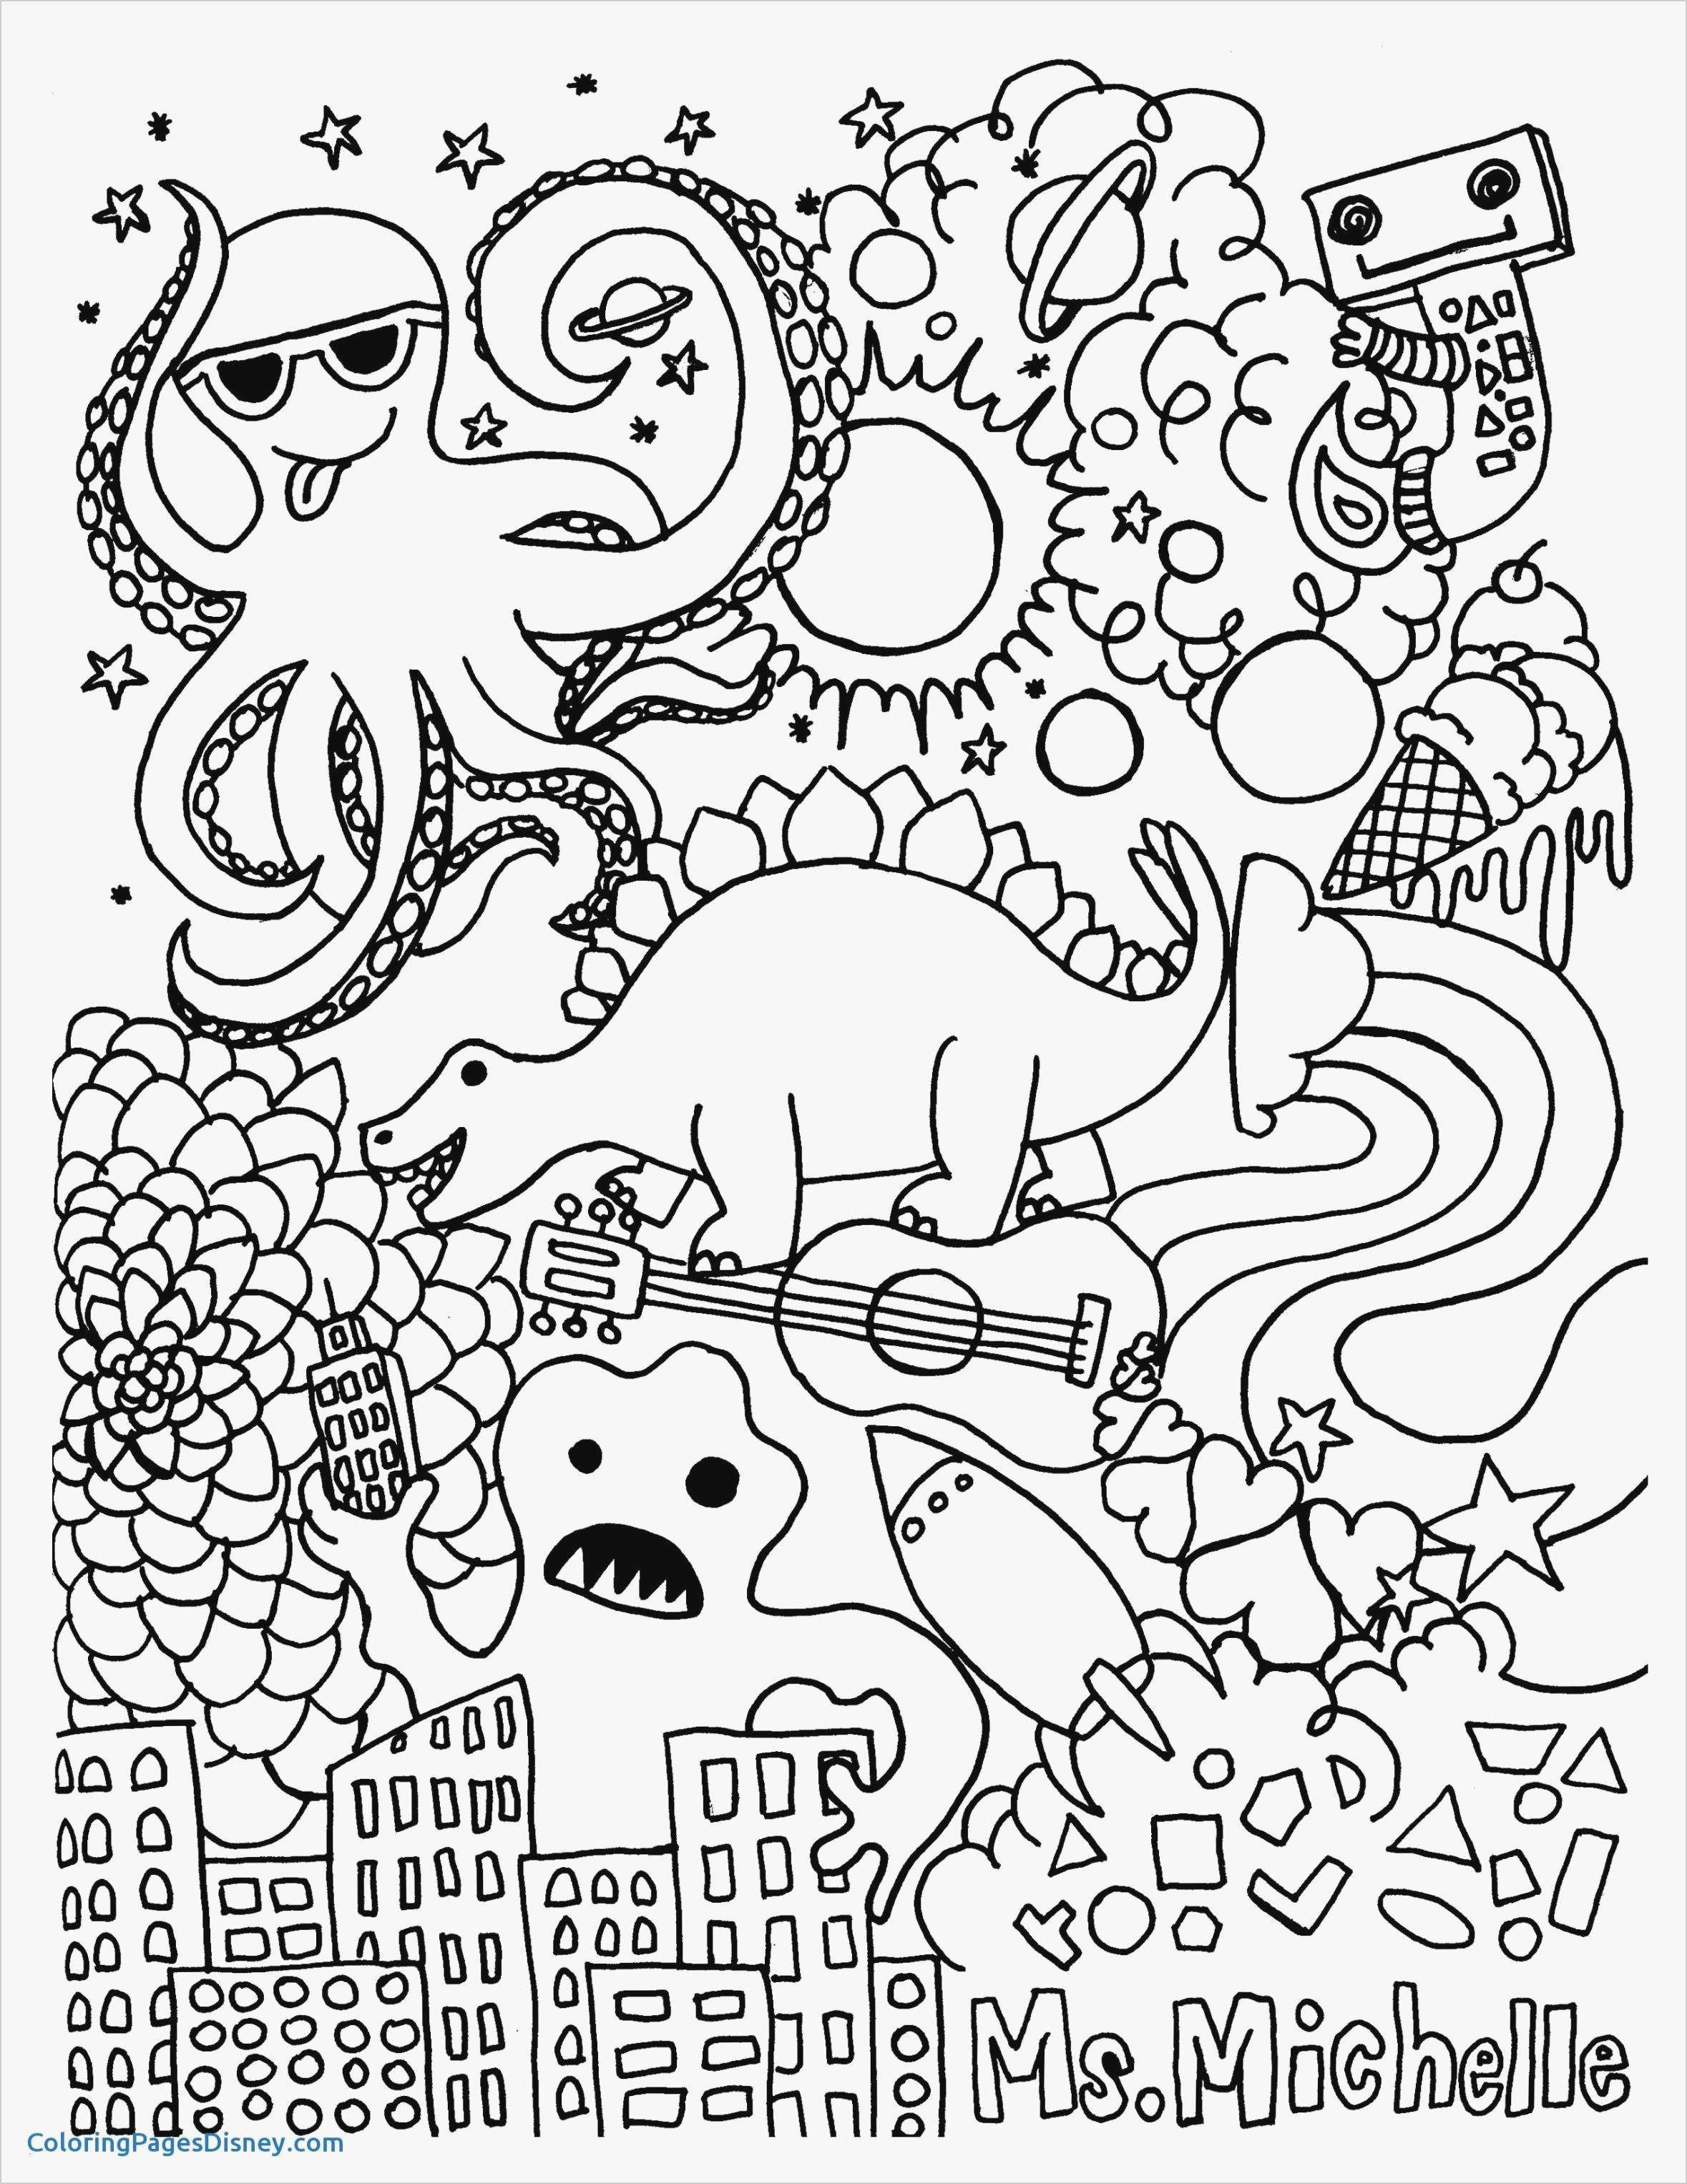 ▷ Coloring Pages Free Printable Coloring Pages For Children That - Free Printable Coloring Book Pages For Adults